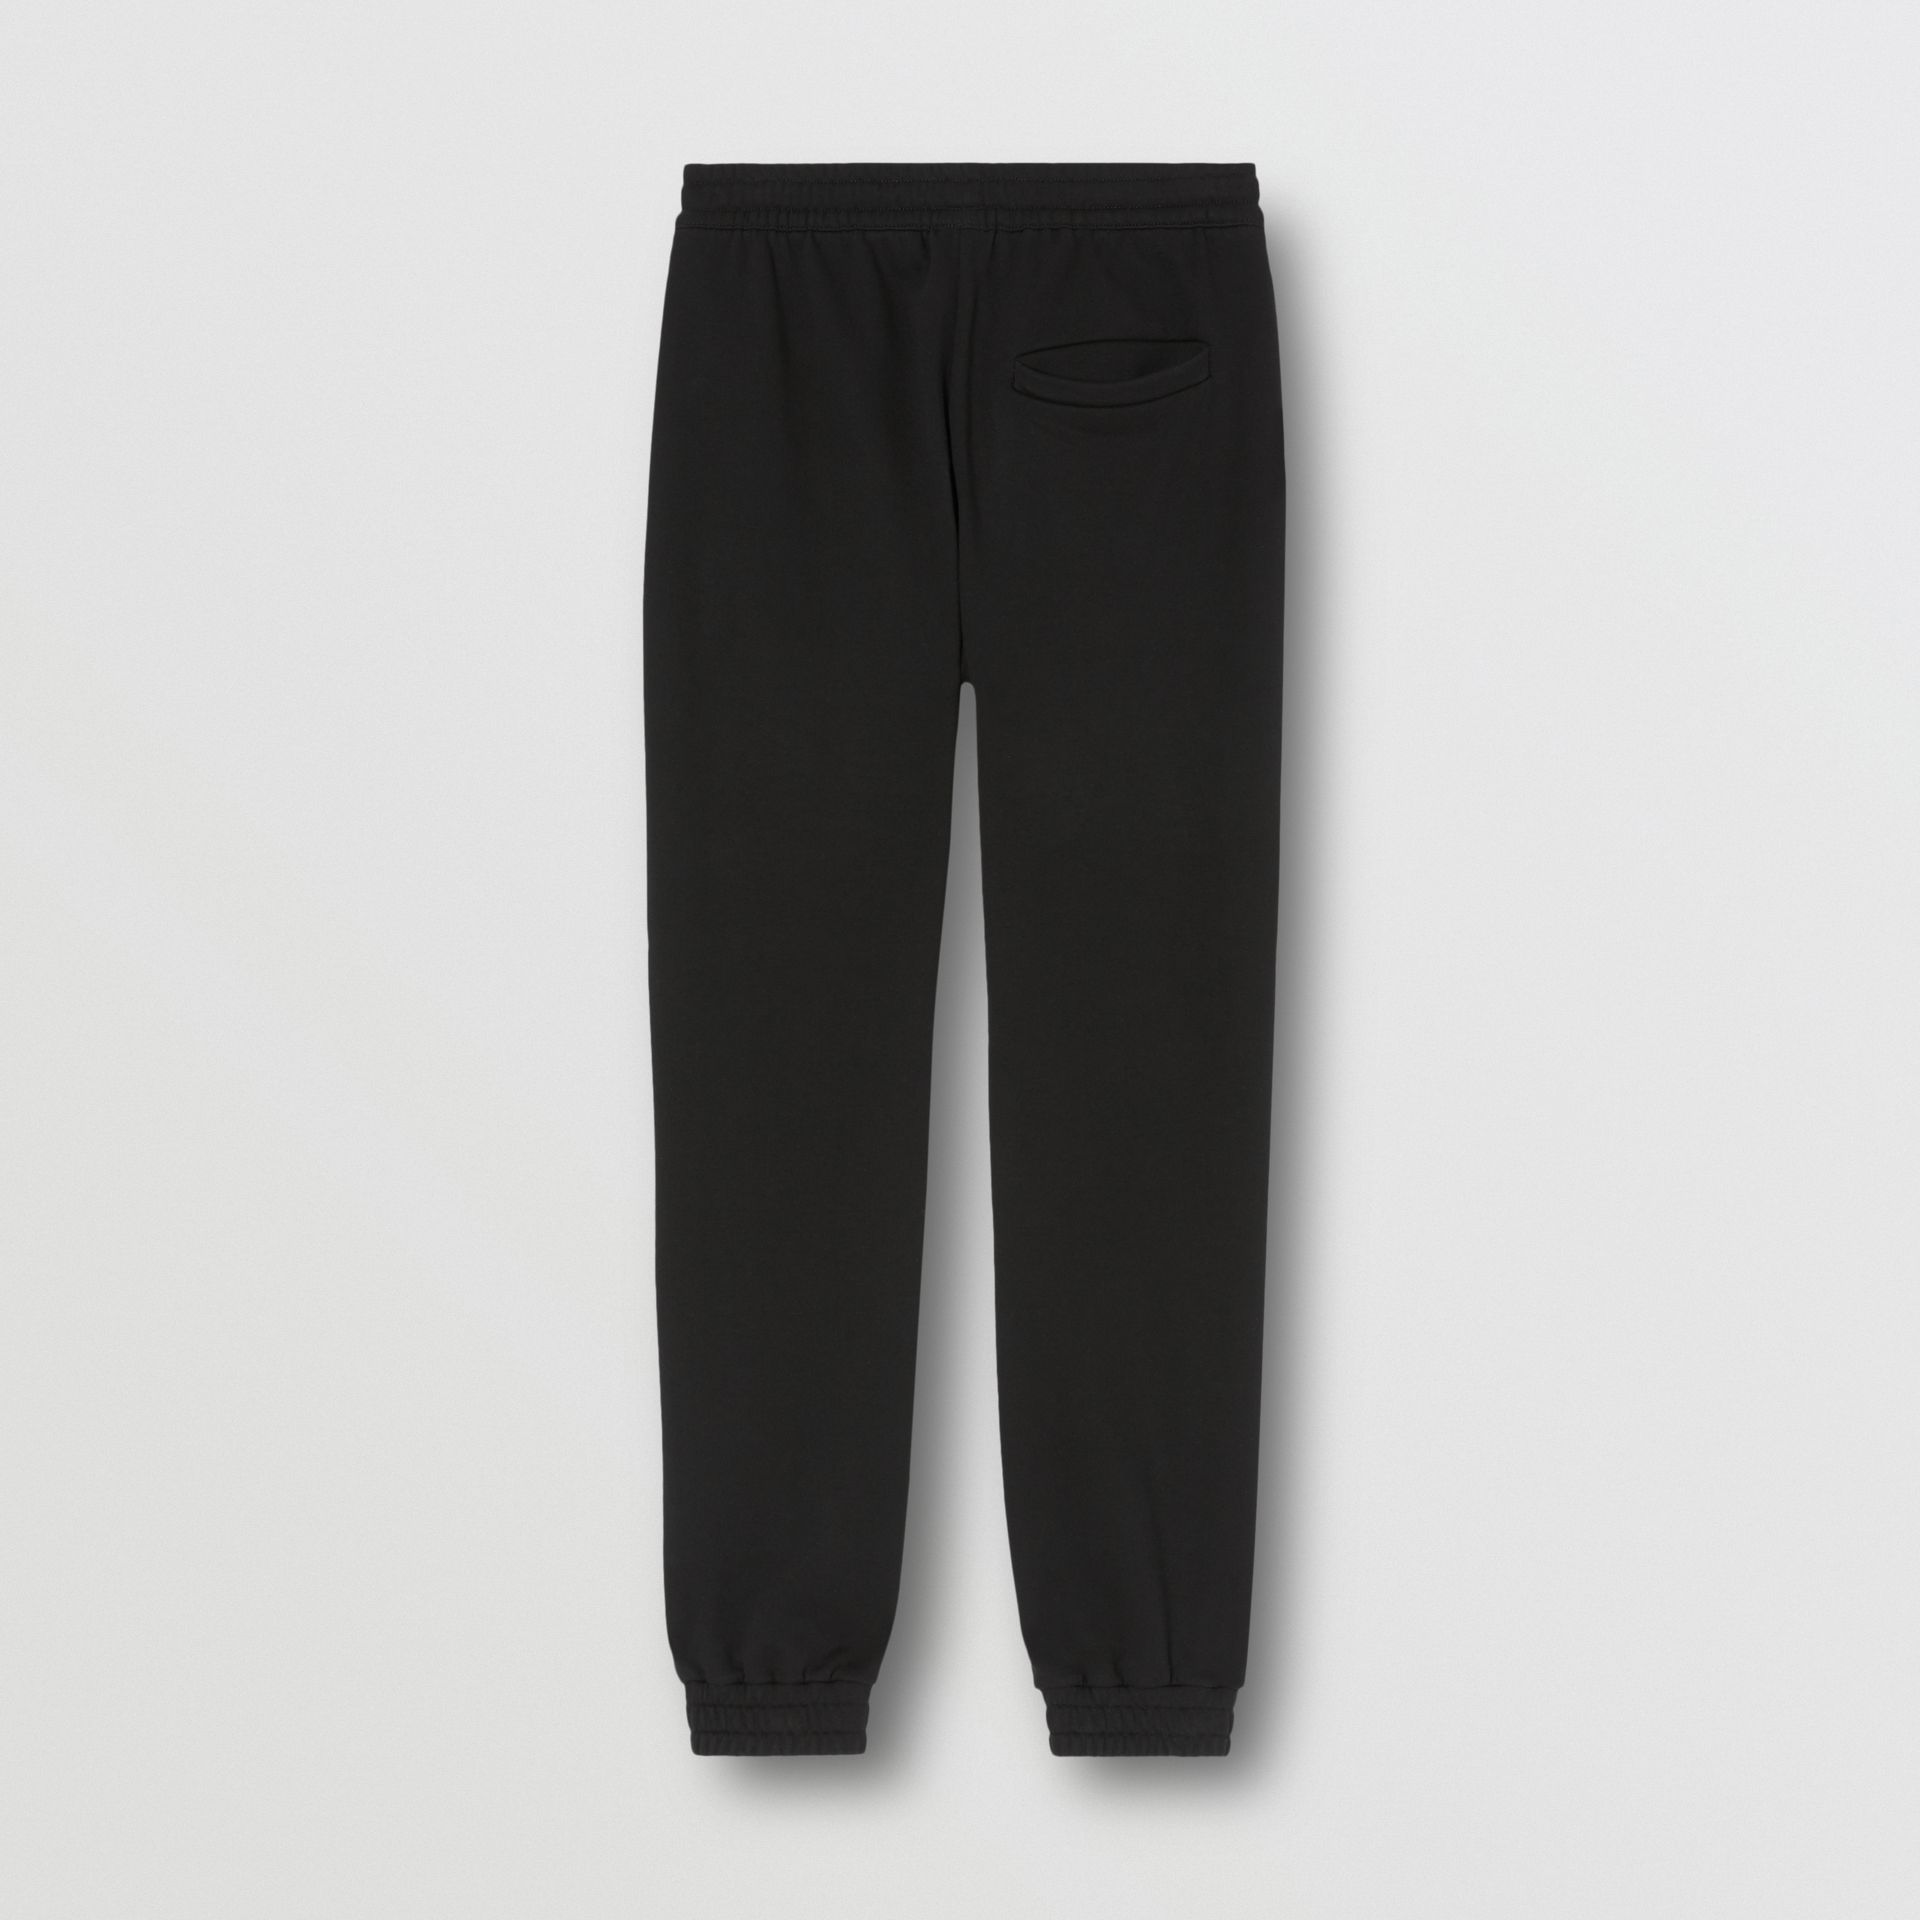 Monogram Motif Cotton Trackpants in Black - Men | Burberry - gallery image 5